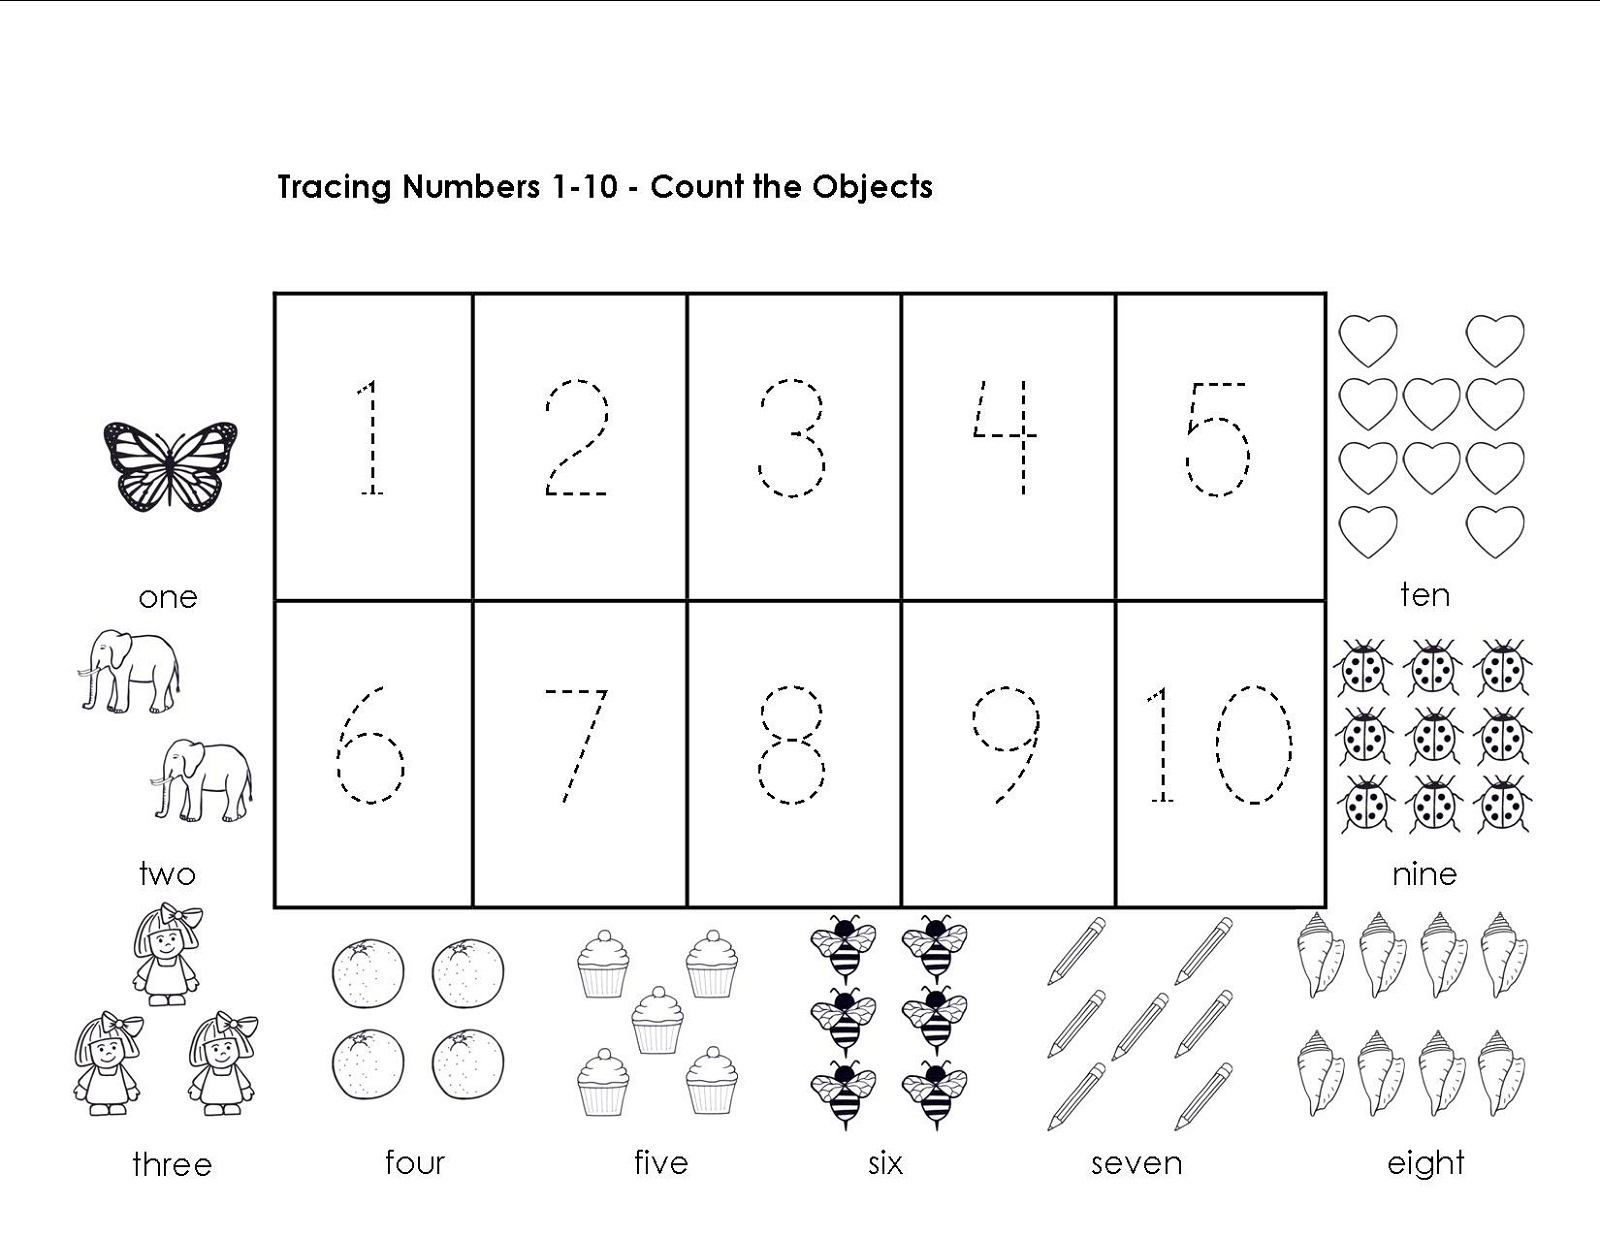 worksheet Tracing Numbers 1-10 worksheet 19891406 numbers 1 10 worksheets kindergarten tracing 110 kindergarten